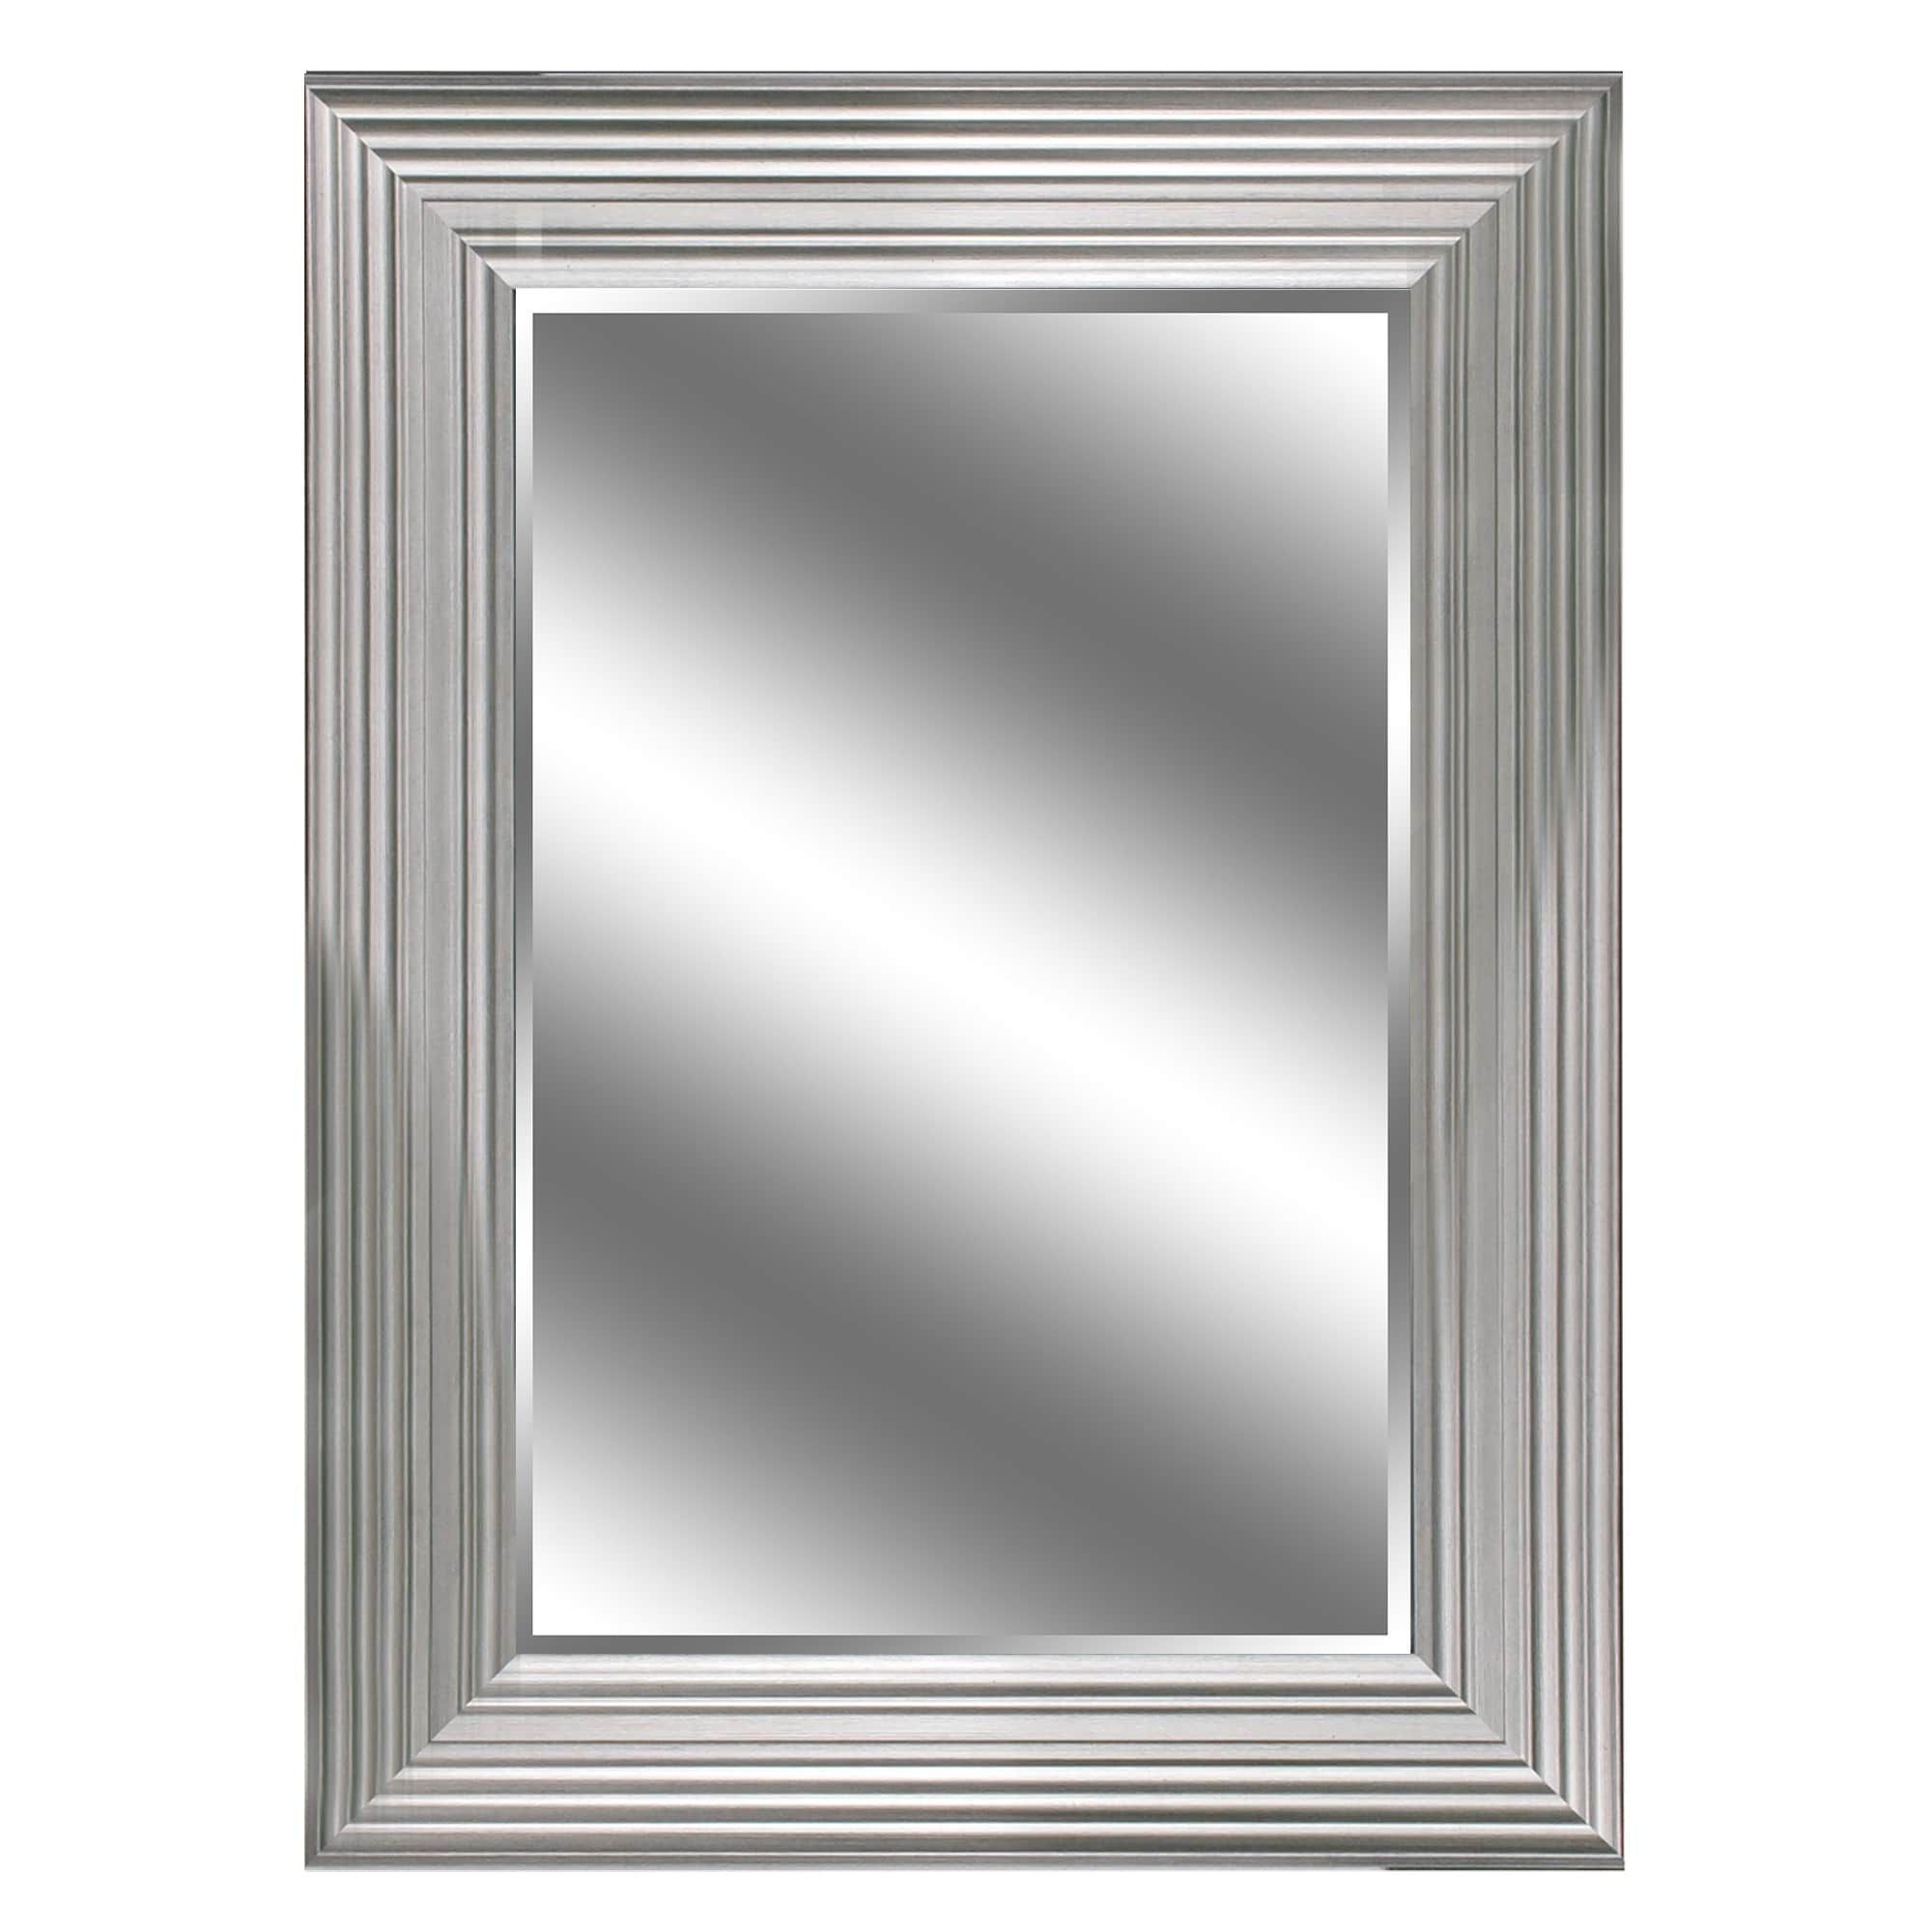 """Dedrick Decorative Framed Modern And Contemporary Wall Mirrors Inside Best And Newest 24"""" X 36"""" Silver Woodgrain Mirror 1"""" Bevel With 5"""" Frame (View 20 of 20)"""